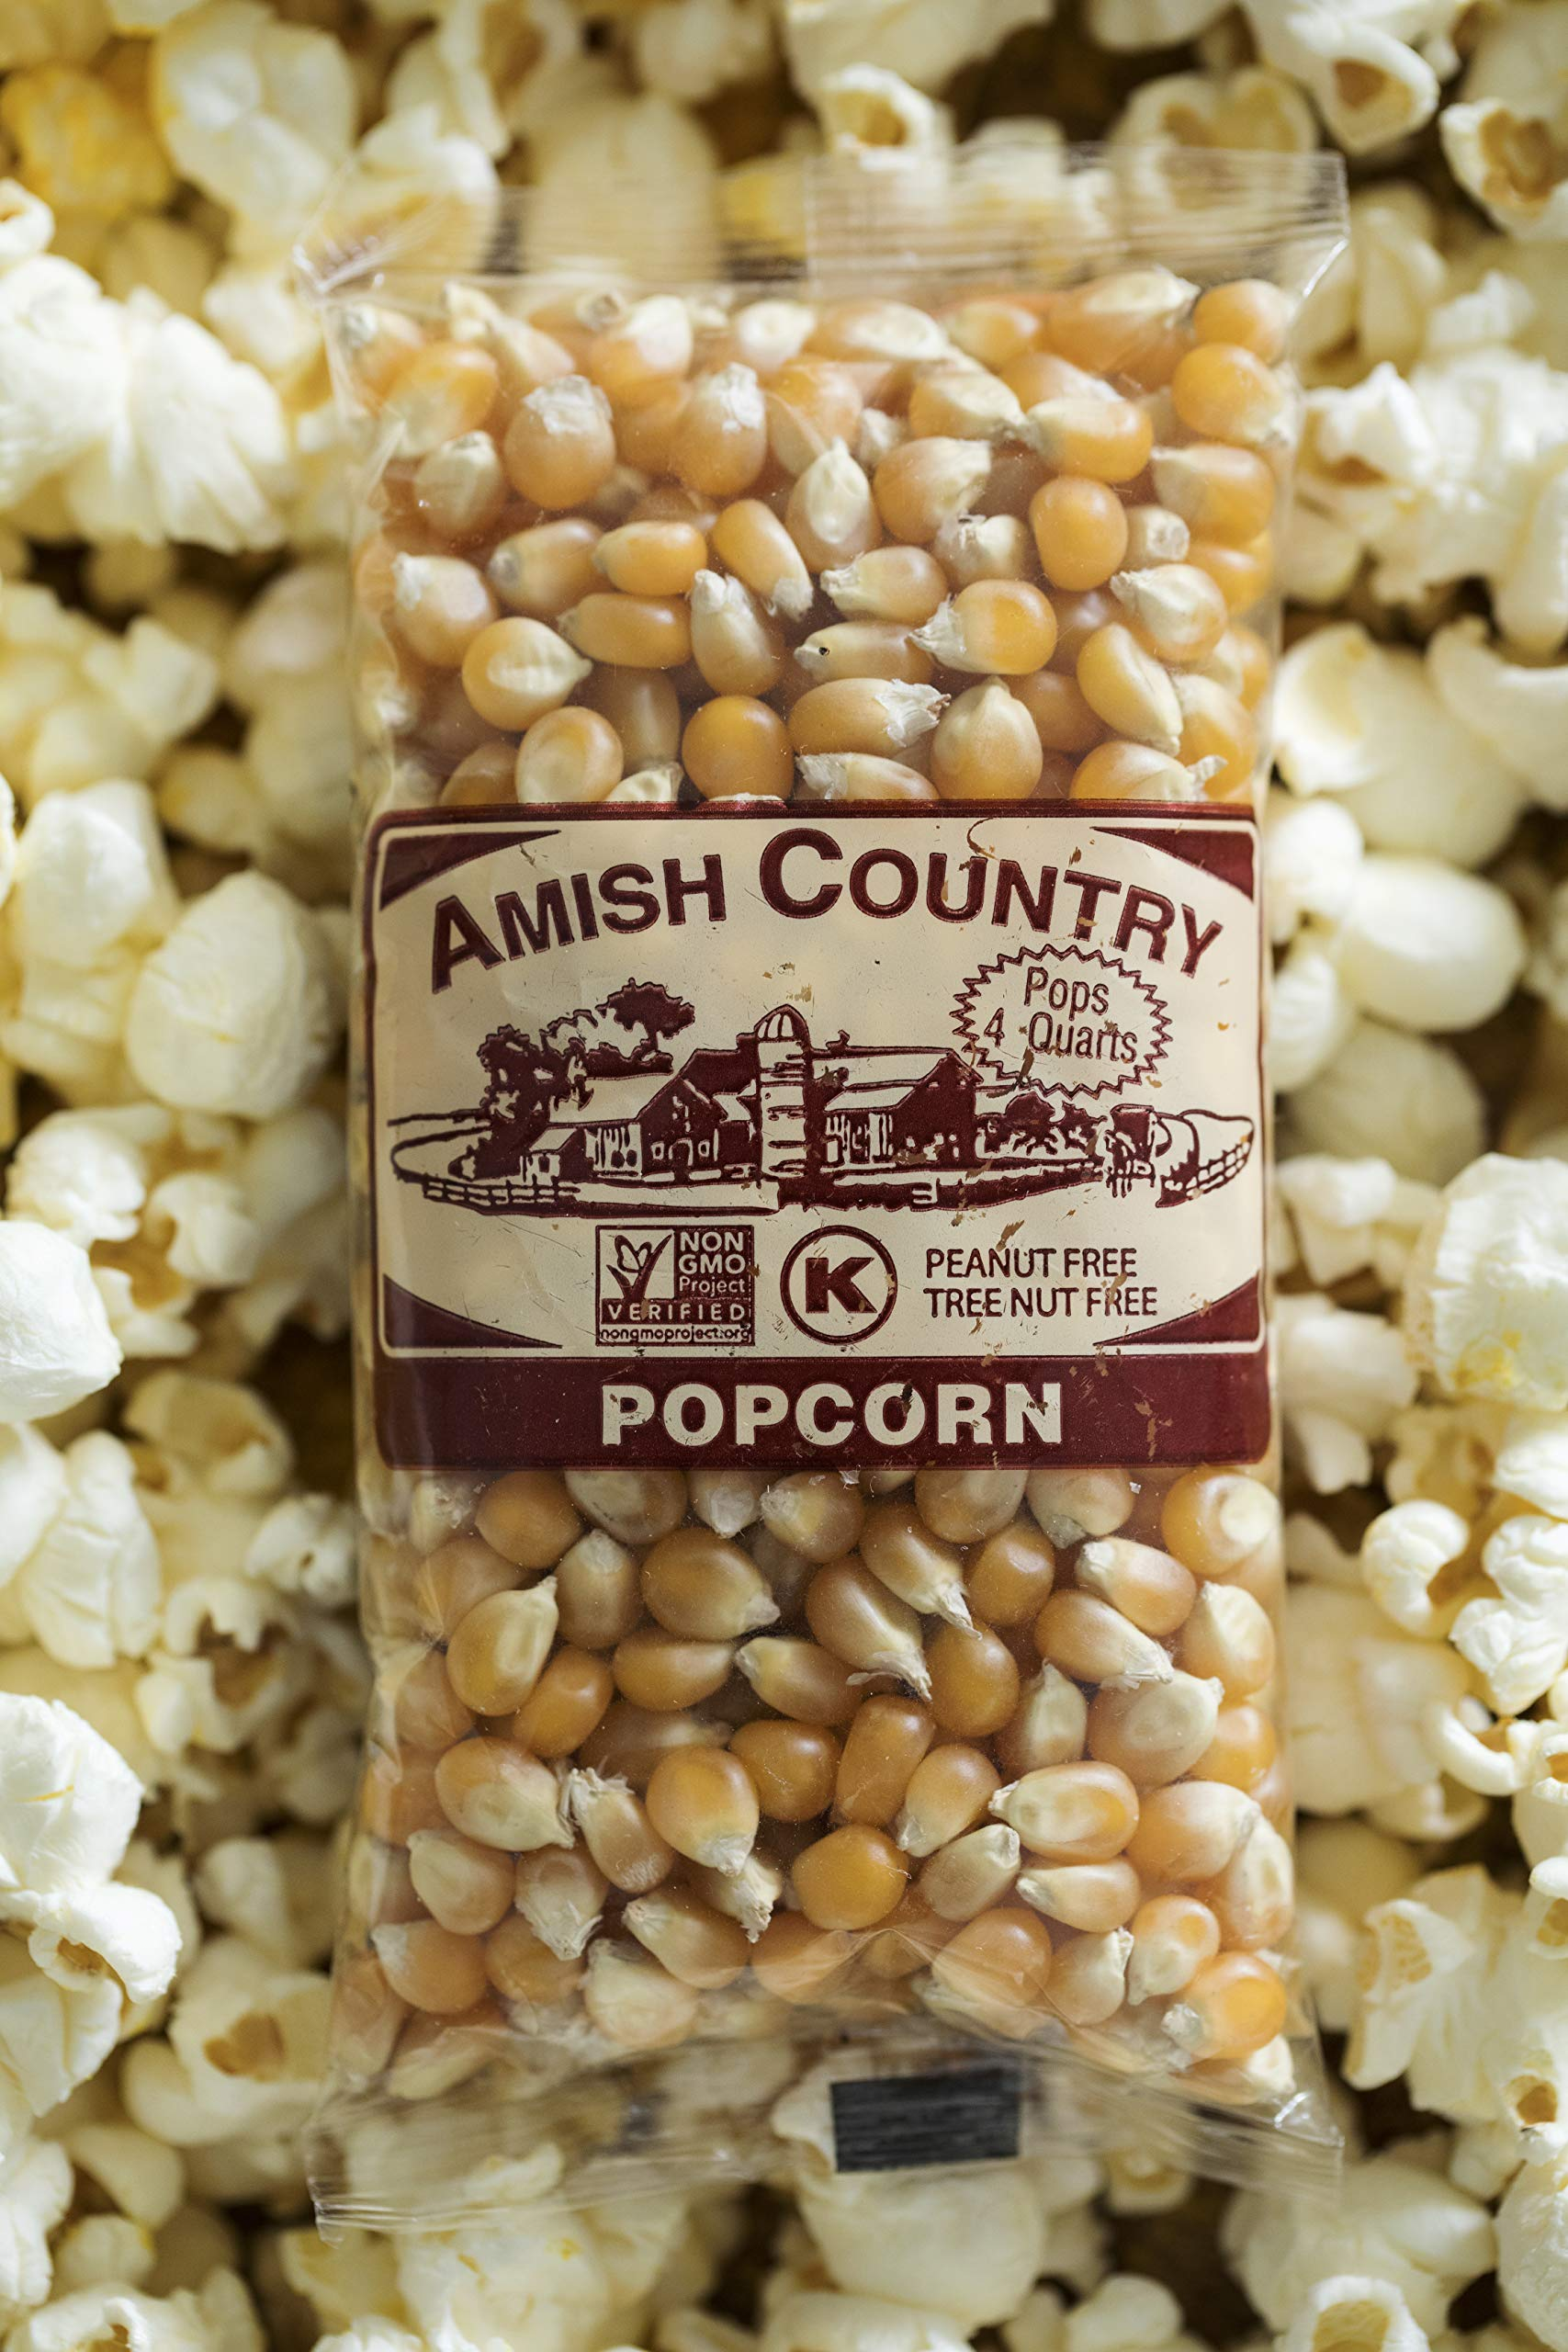 Amish Country Popcorn - Mushroom Popcorn (4 Ounce - 24 Pack) Bags - Old Fashioned, Non GMO, and Gluten Free - with Recipe Guide by Amish Country Popcorn (Image #5)